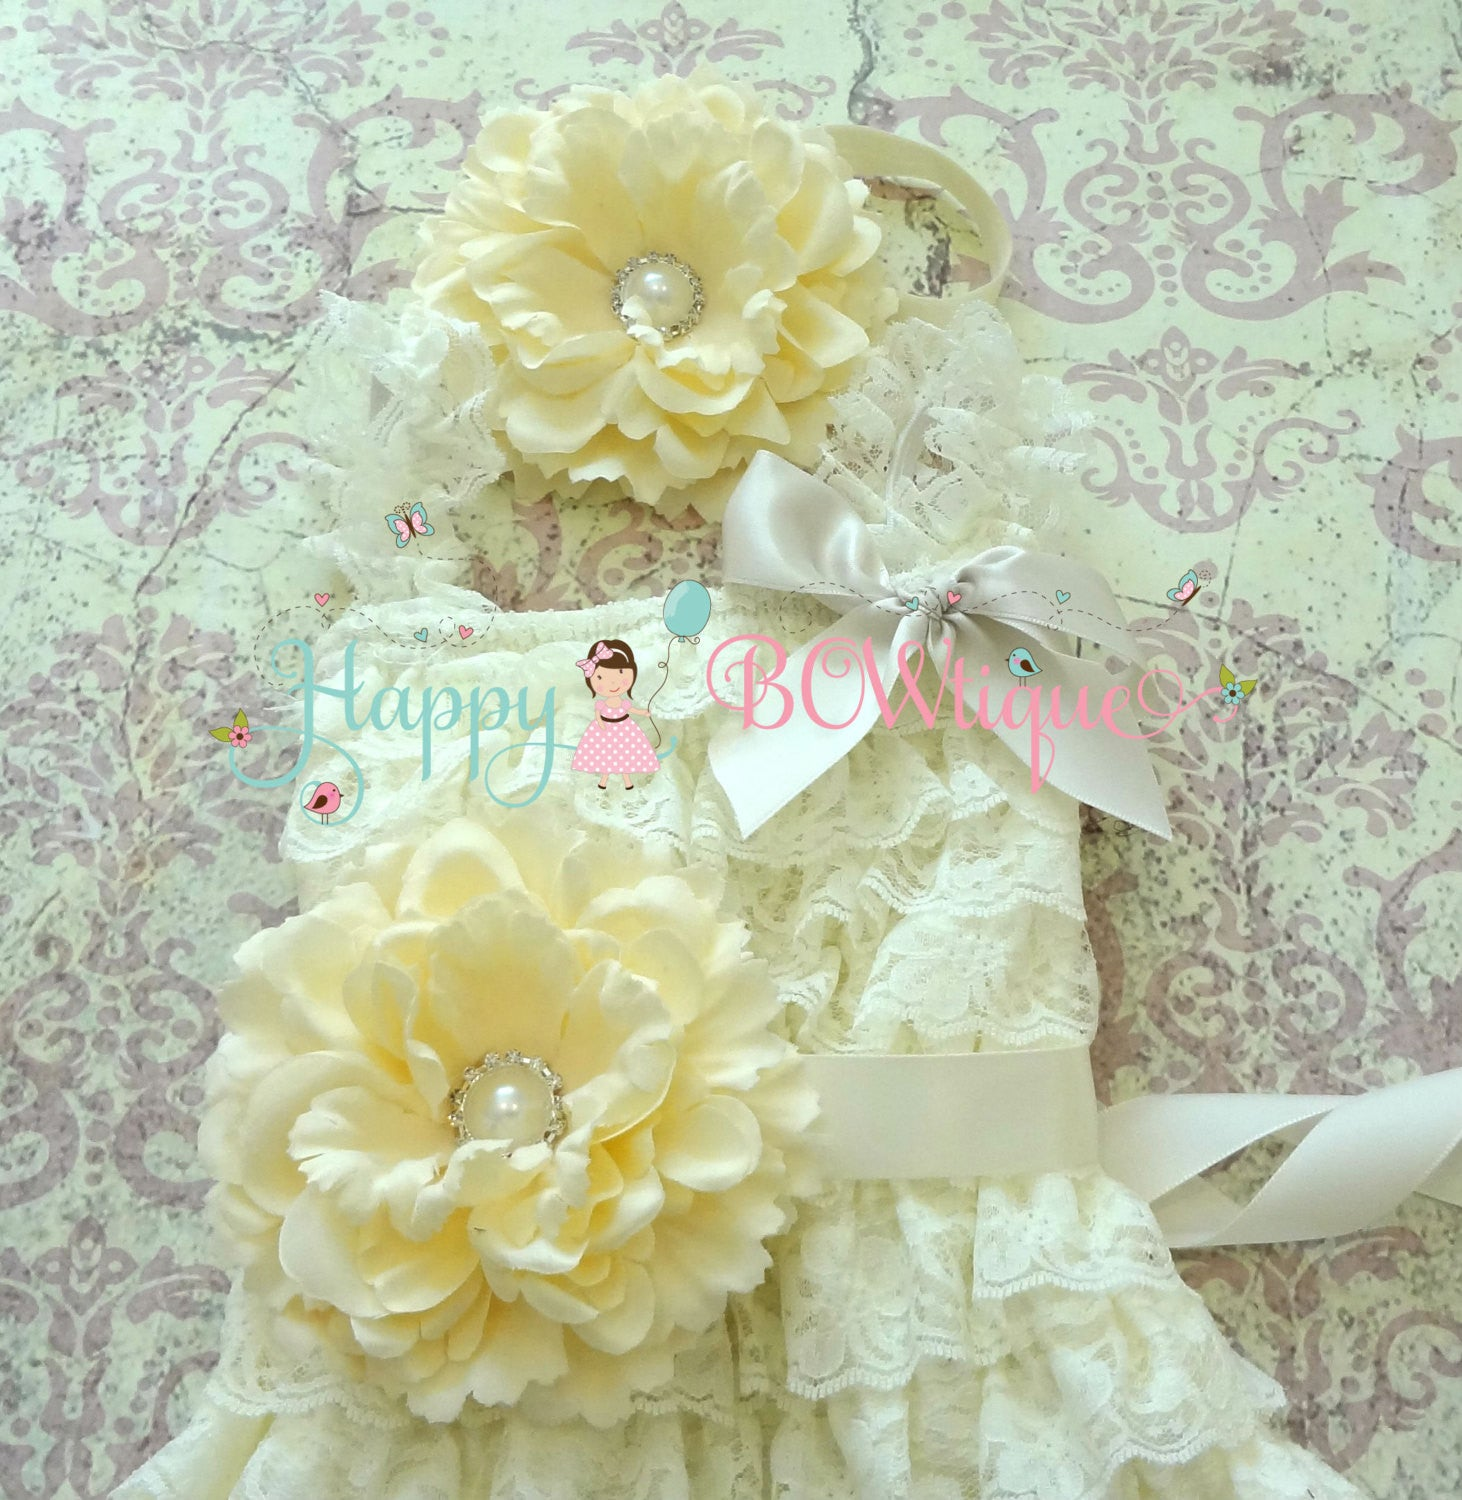 Ivory Flower girl dress/ Girl's Ivory Cream Flower Lace Dress set - Happy BOWtique - children's clothing, Baby Girl clothing